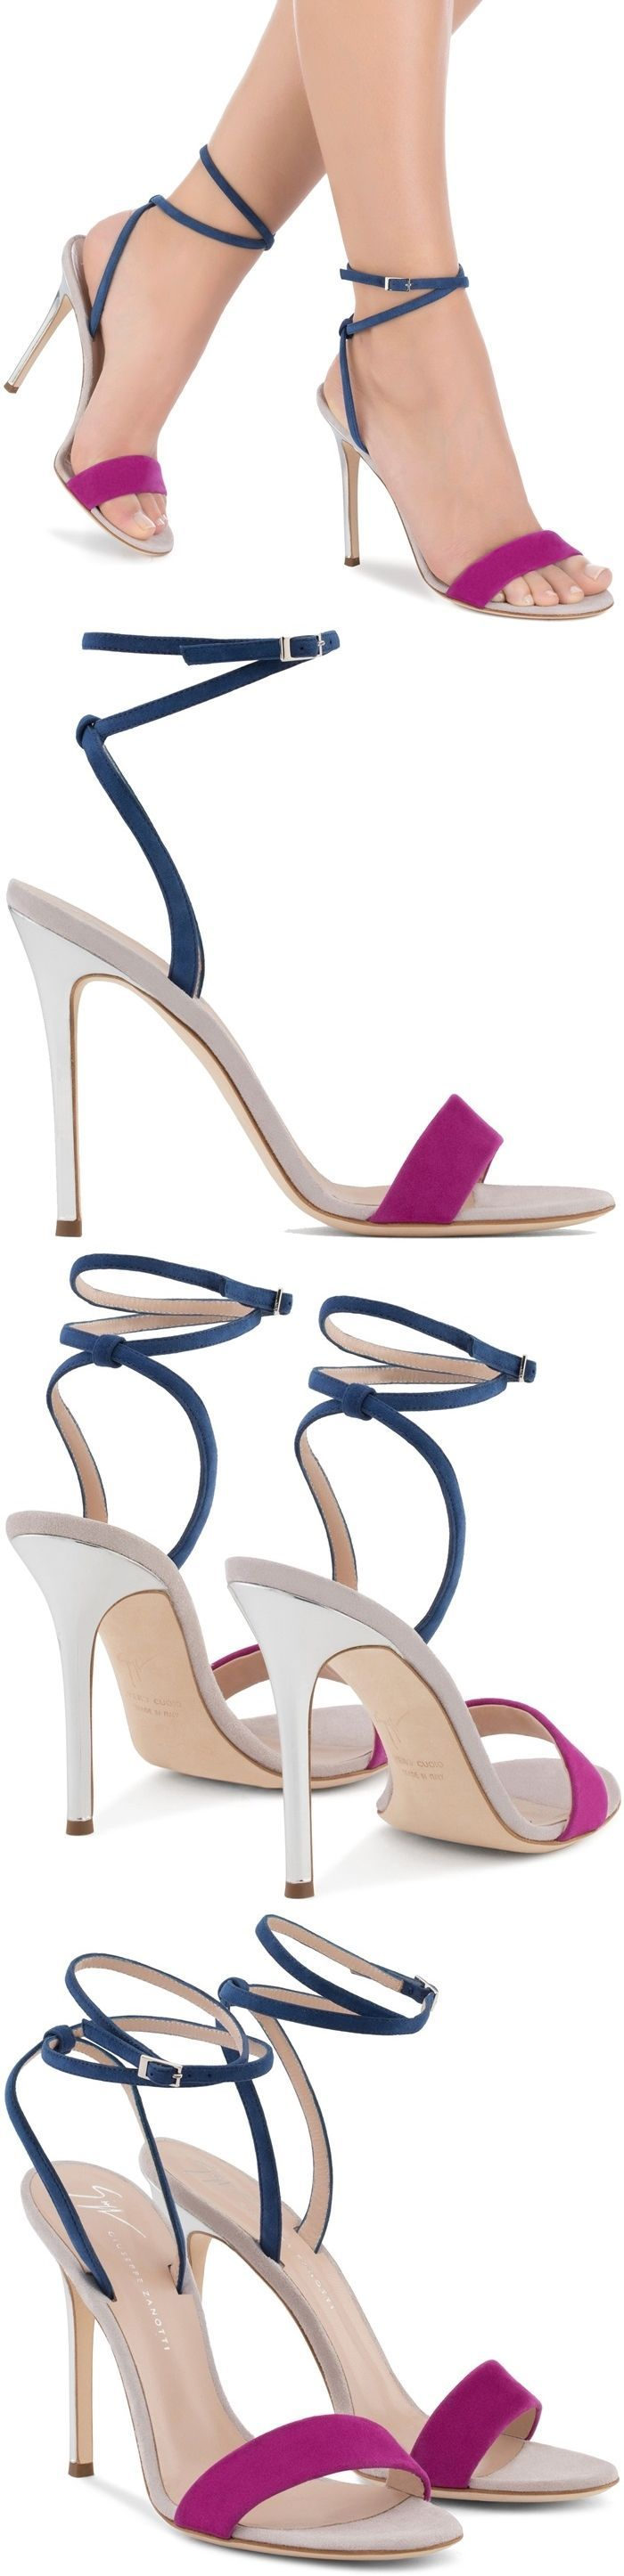 'Georgina' Colorblock High Heel Sandals